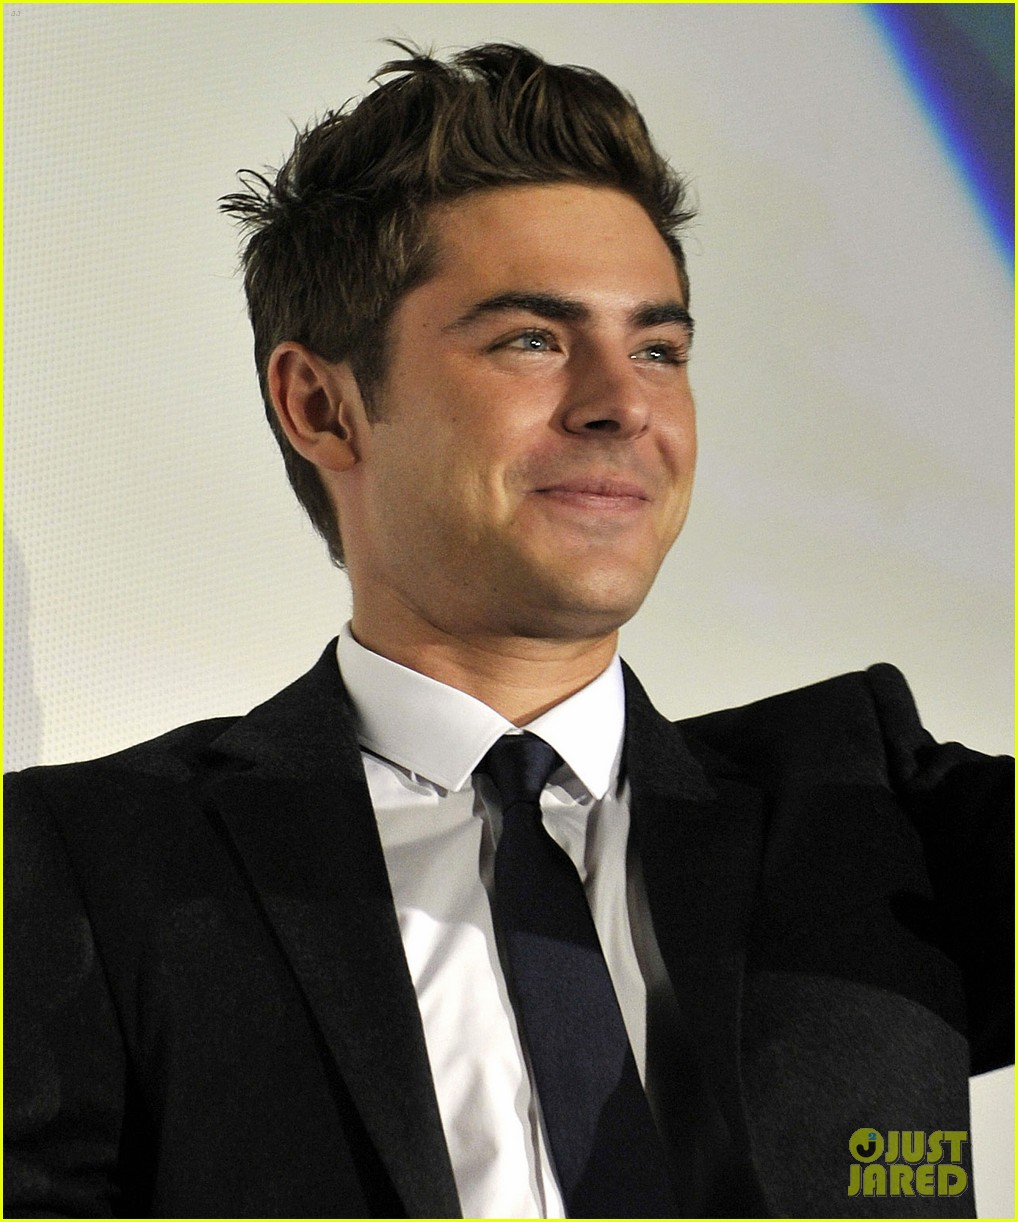 Zac Efron New Year S Eve In Japan Photo 2609898 Zac Efron Pictures Just Jared